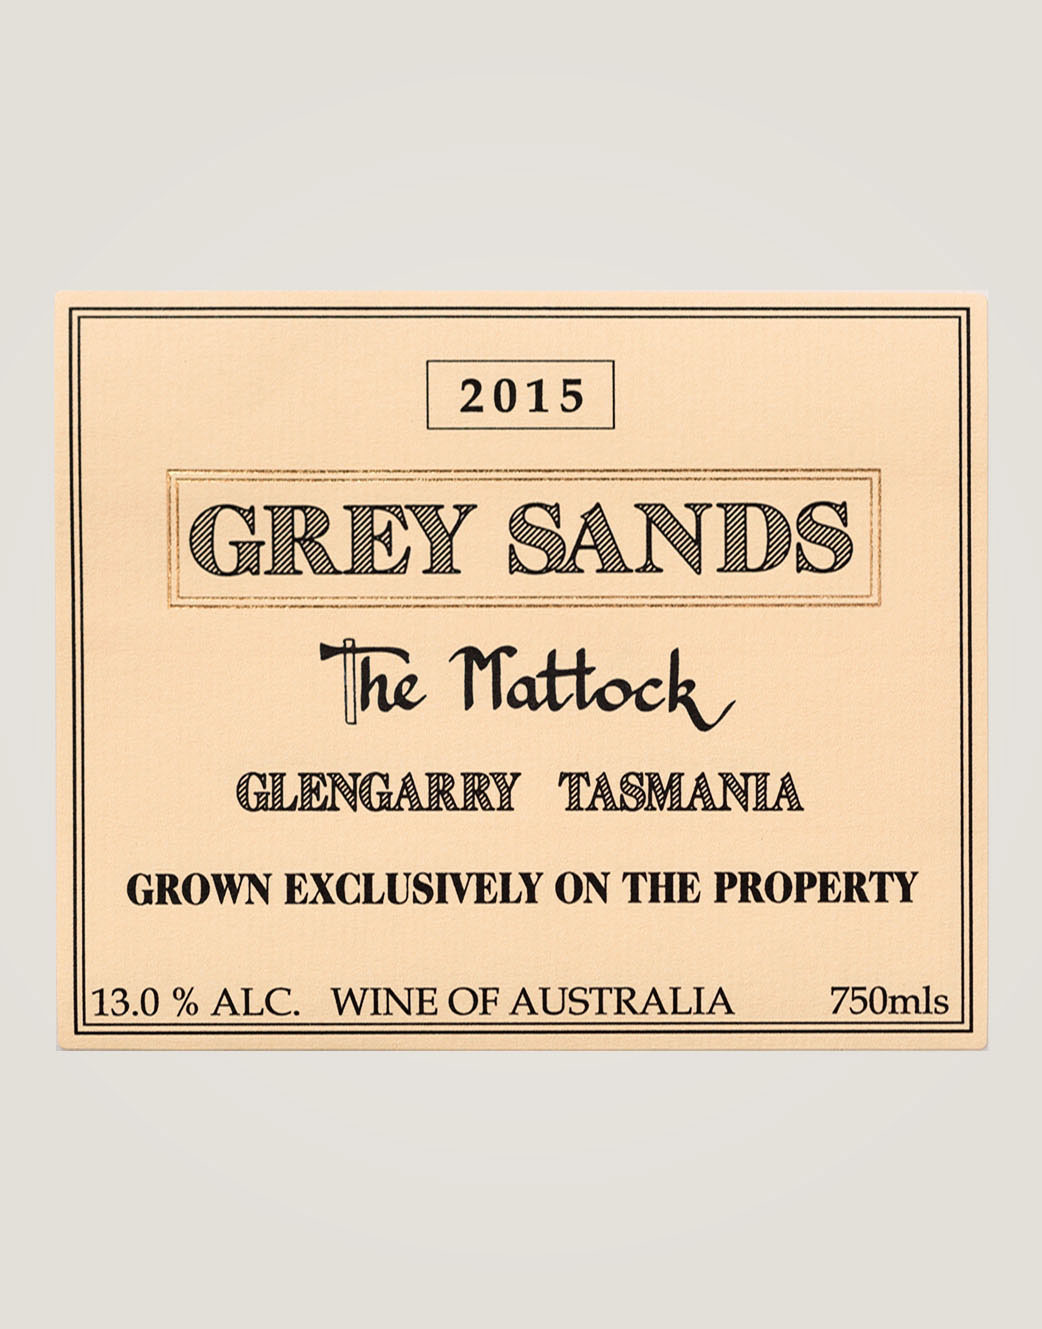 Large front label of Grey Sands 2015 The Mattock